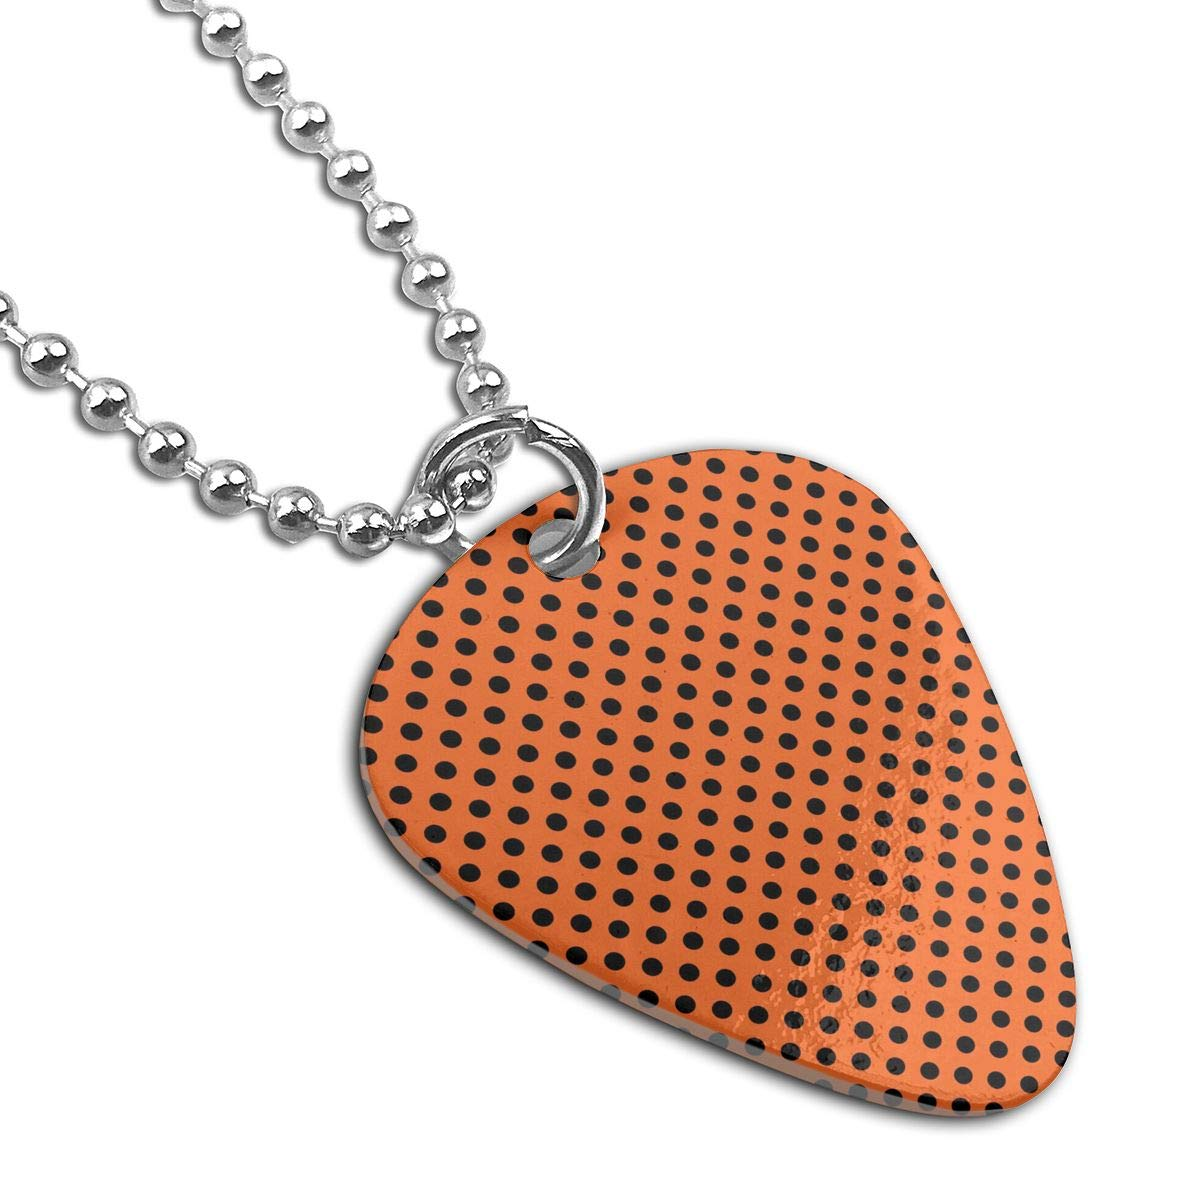 Sheery Black Spots Dog Tag Pendant With Guitar Bassiform